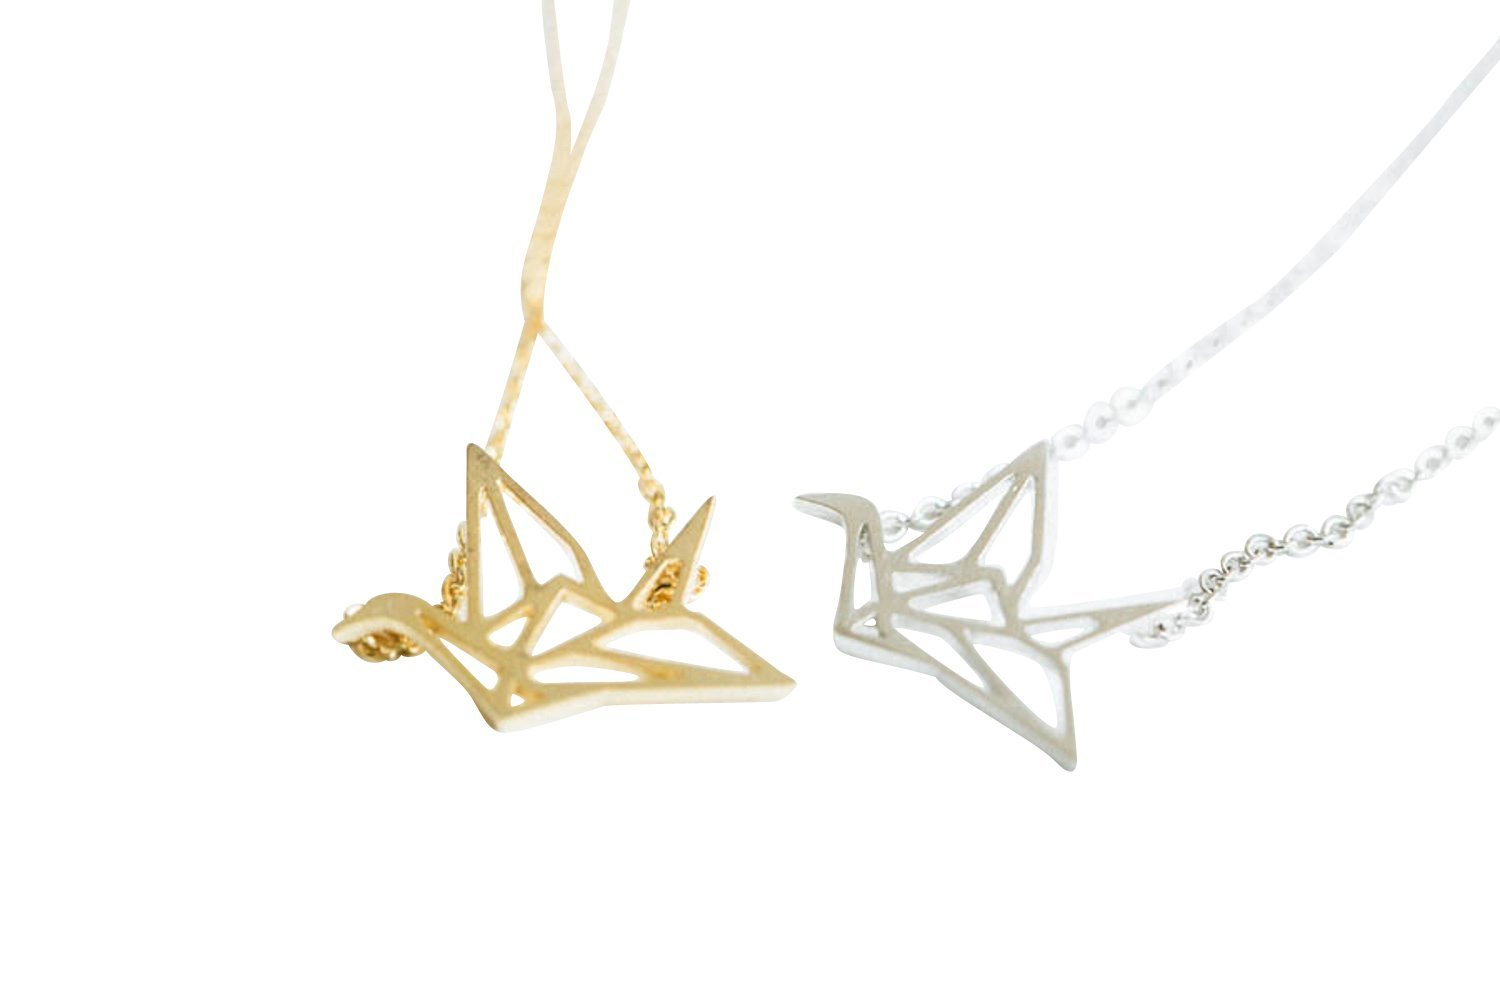 Crane Necklace-fj , crane necklace, papar crane necklace, paper crane pendant necklace, paper crane pendant jewelry, charm necklace, crystal necklace,